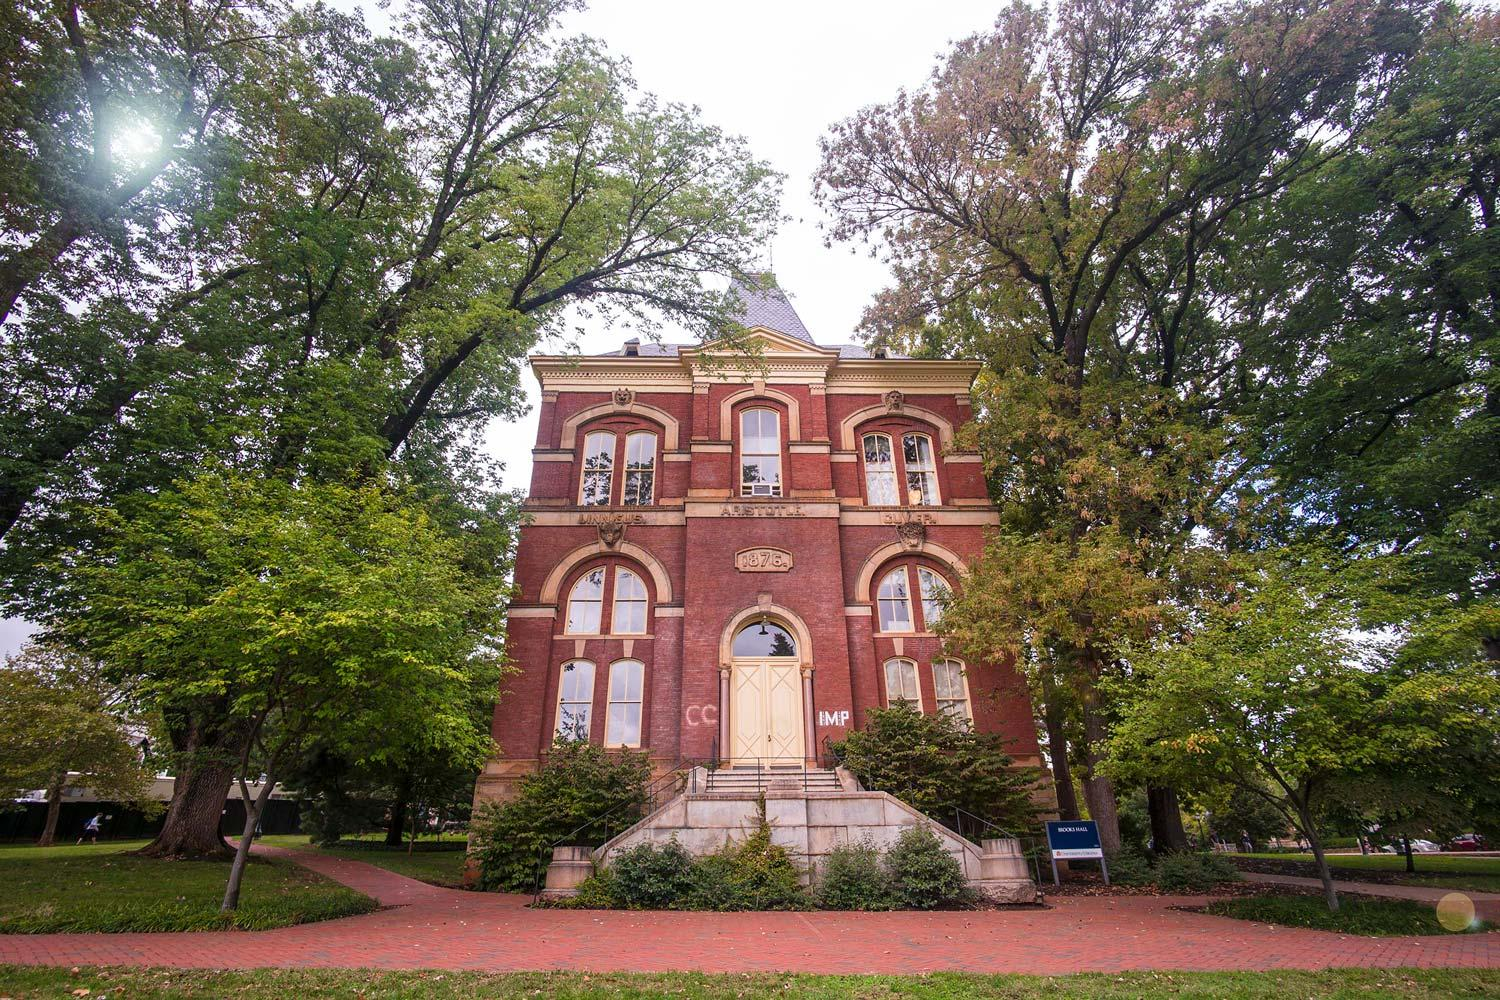 Brooks Hall, one of the first non-Jeffersonian buildings at UVA, has had a long and checkered history.